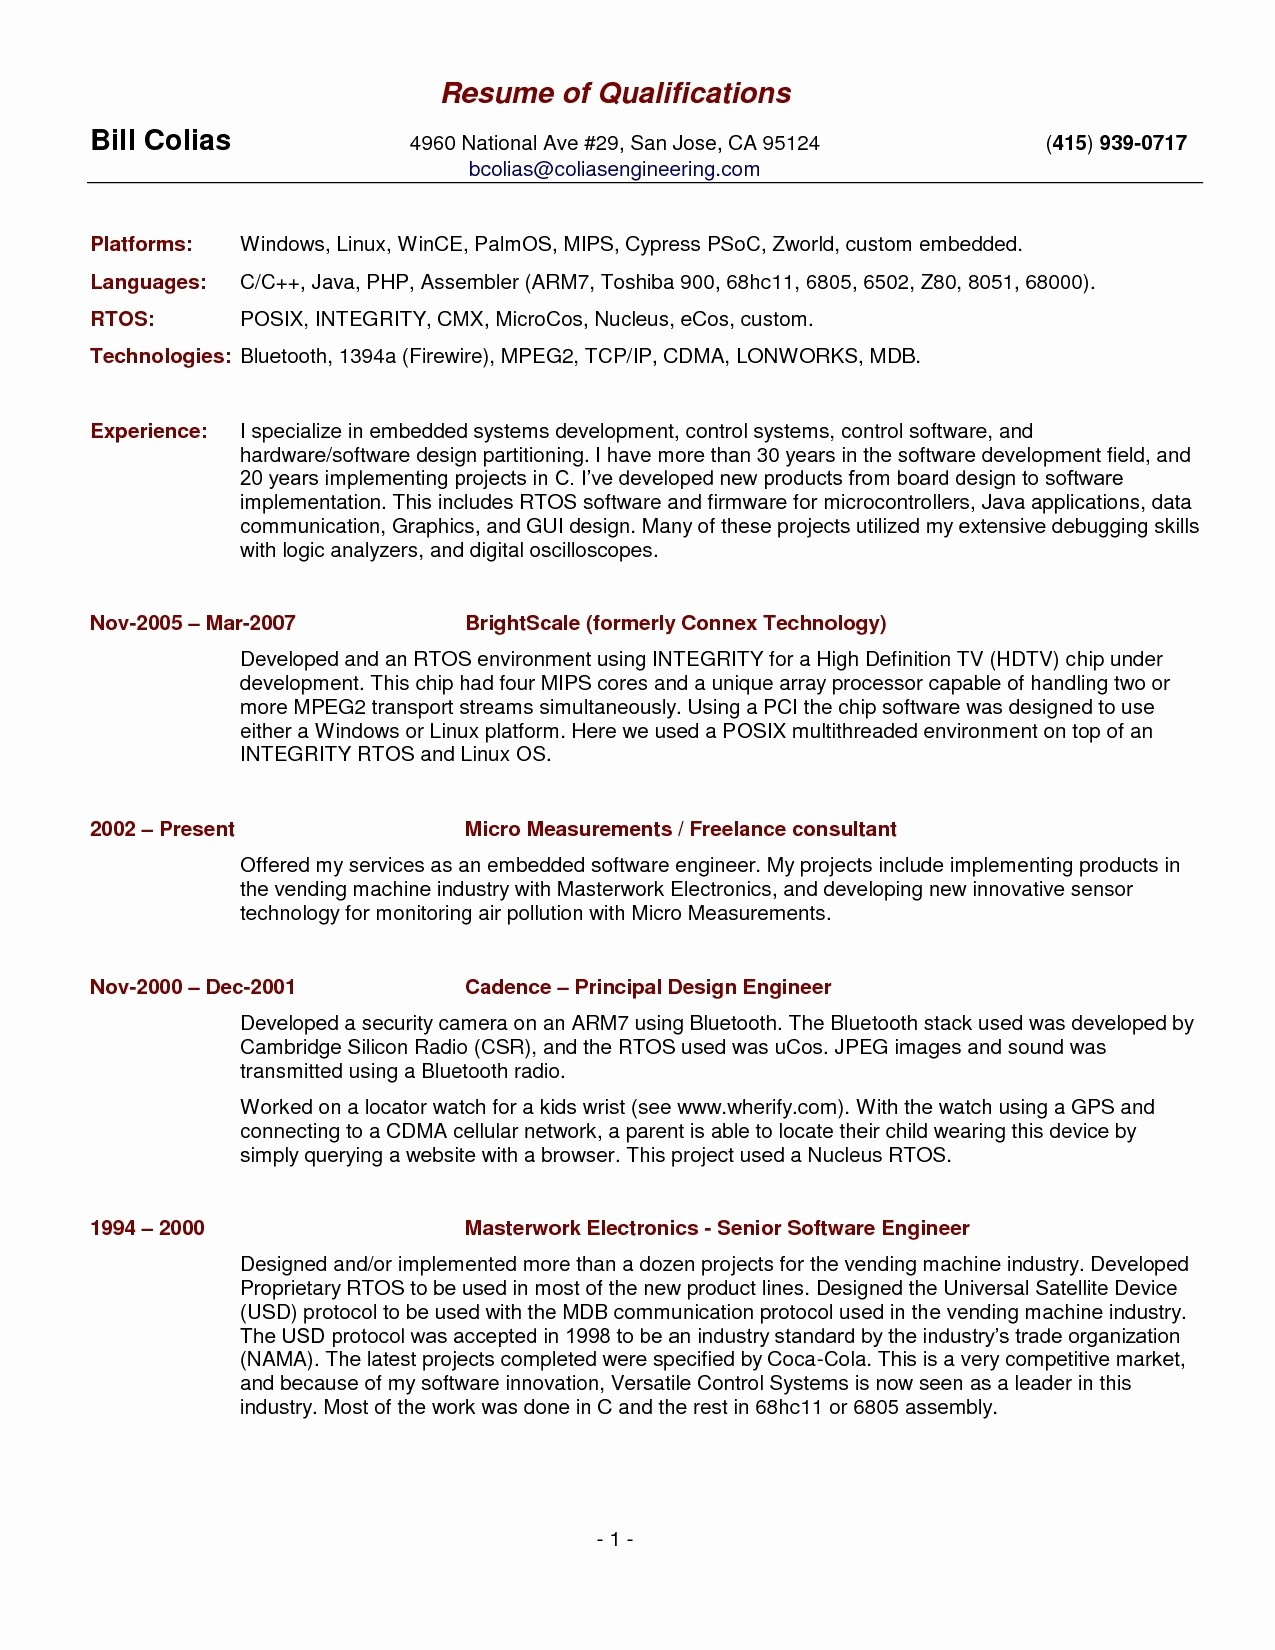 Resume Template for Engineers - Download Unique Best Resume Template